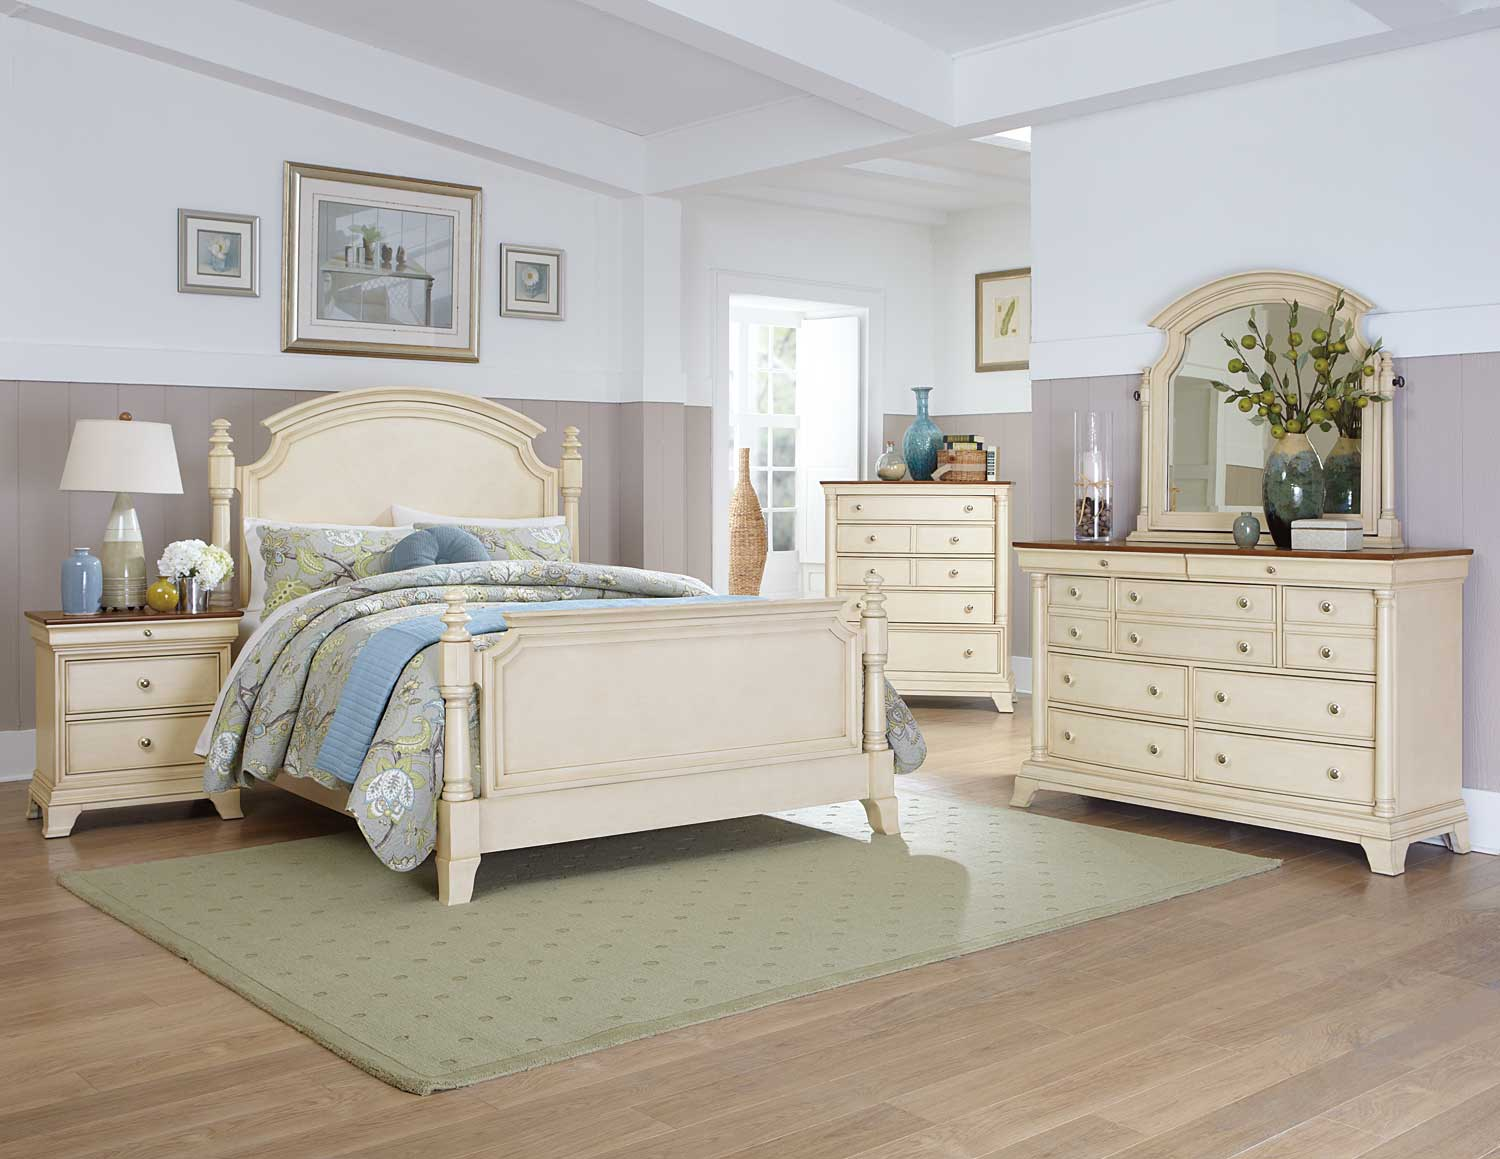 Homelegance inglewood ii bedroom set white b1402w bed for White dresser set bedroom furniture